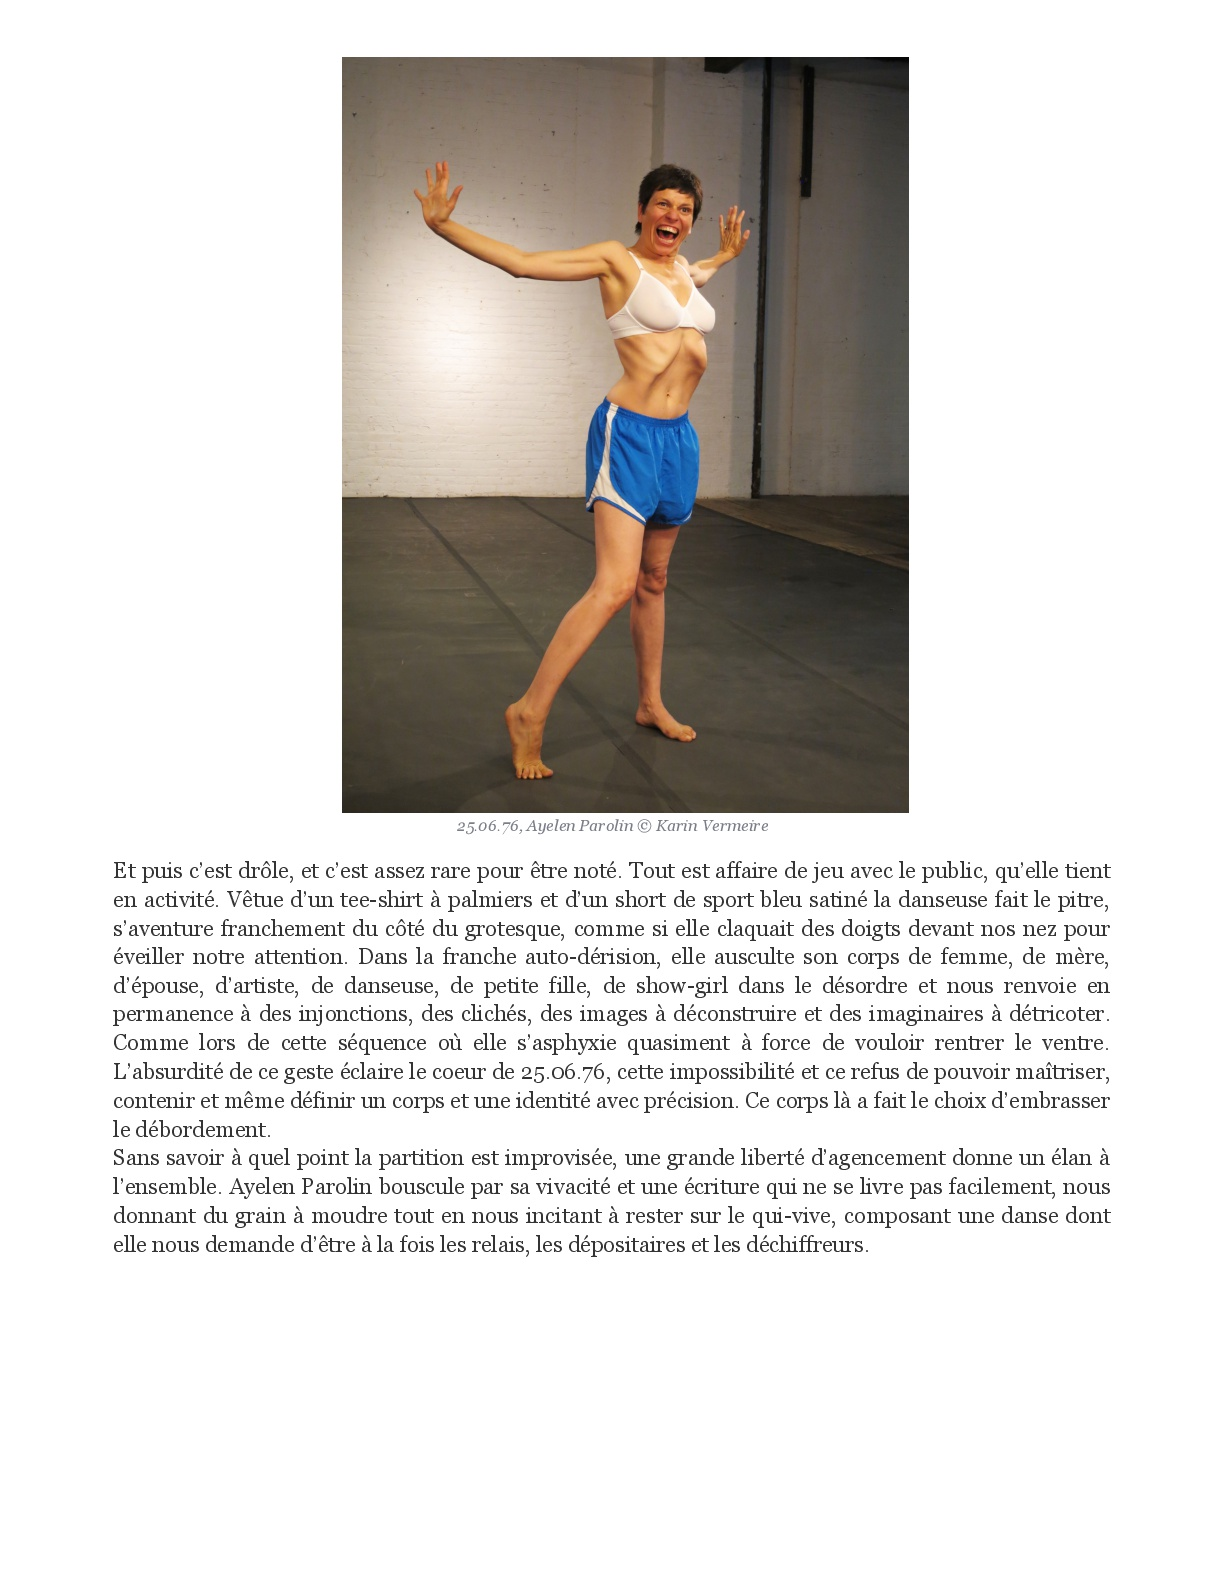 article-M.Pons-CCCDanse-003.jpg